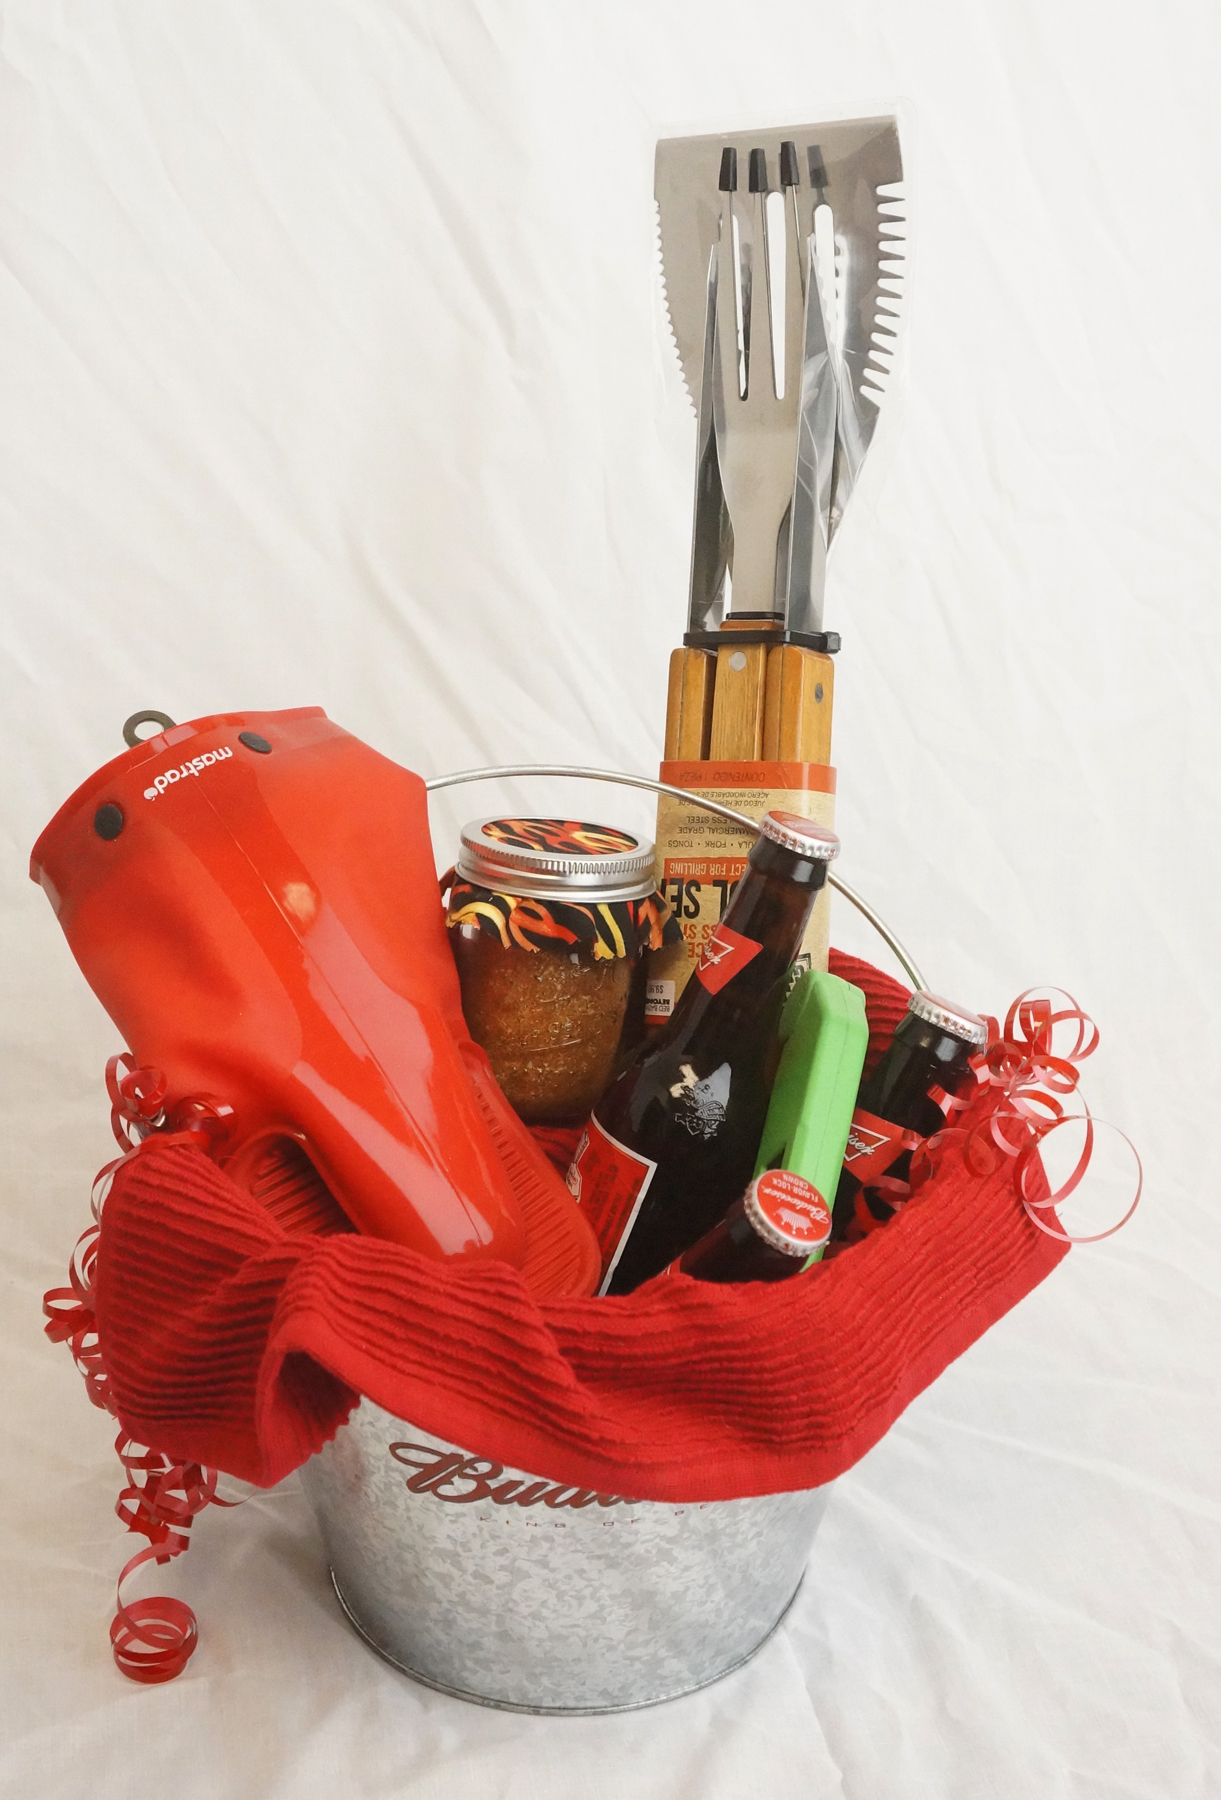 Gift for Guys: BBQ Spice Rub and Basket